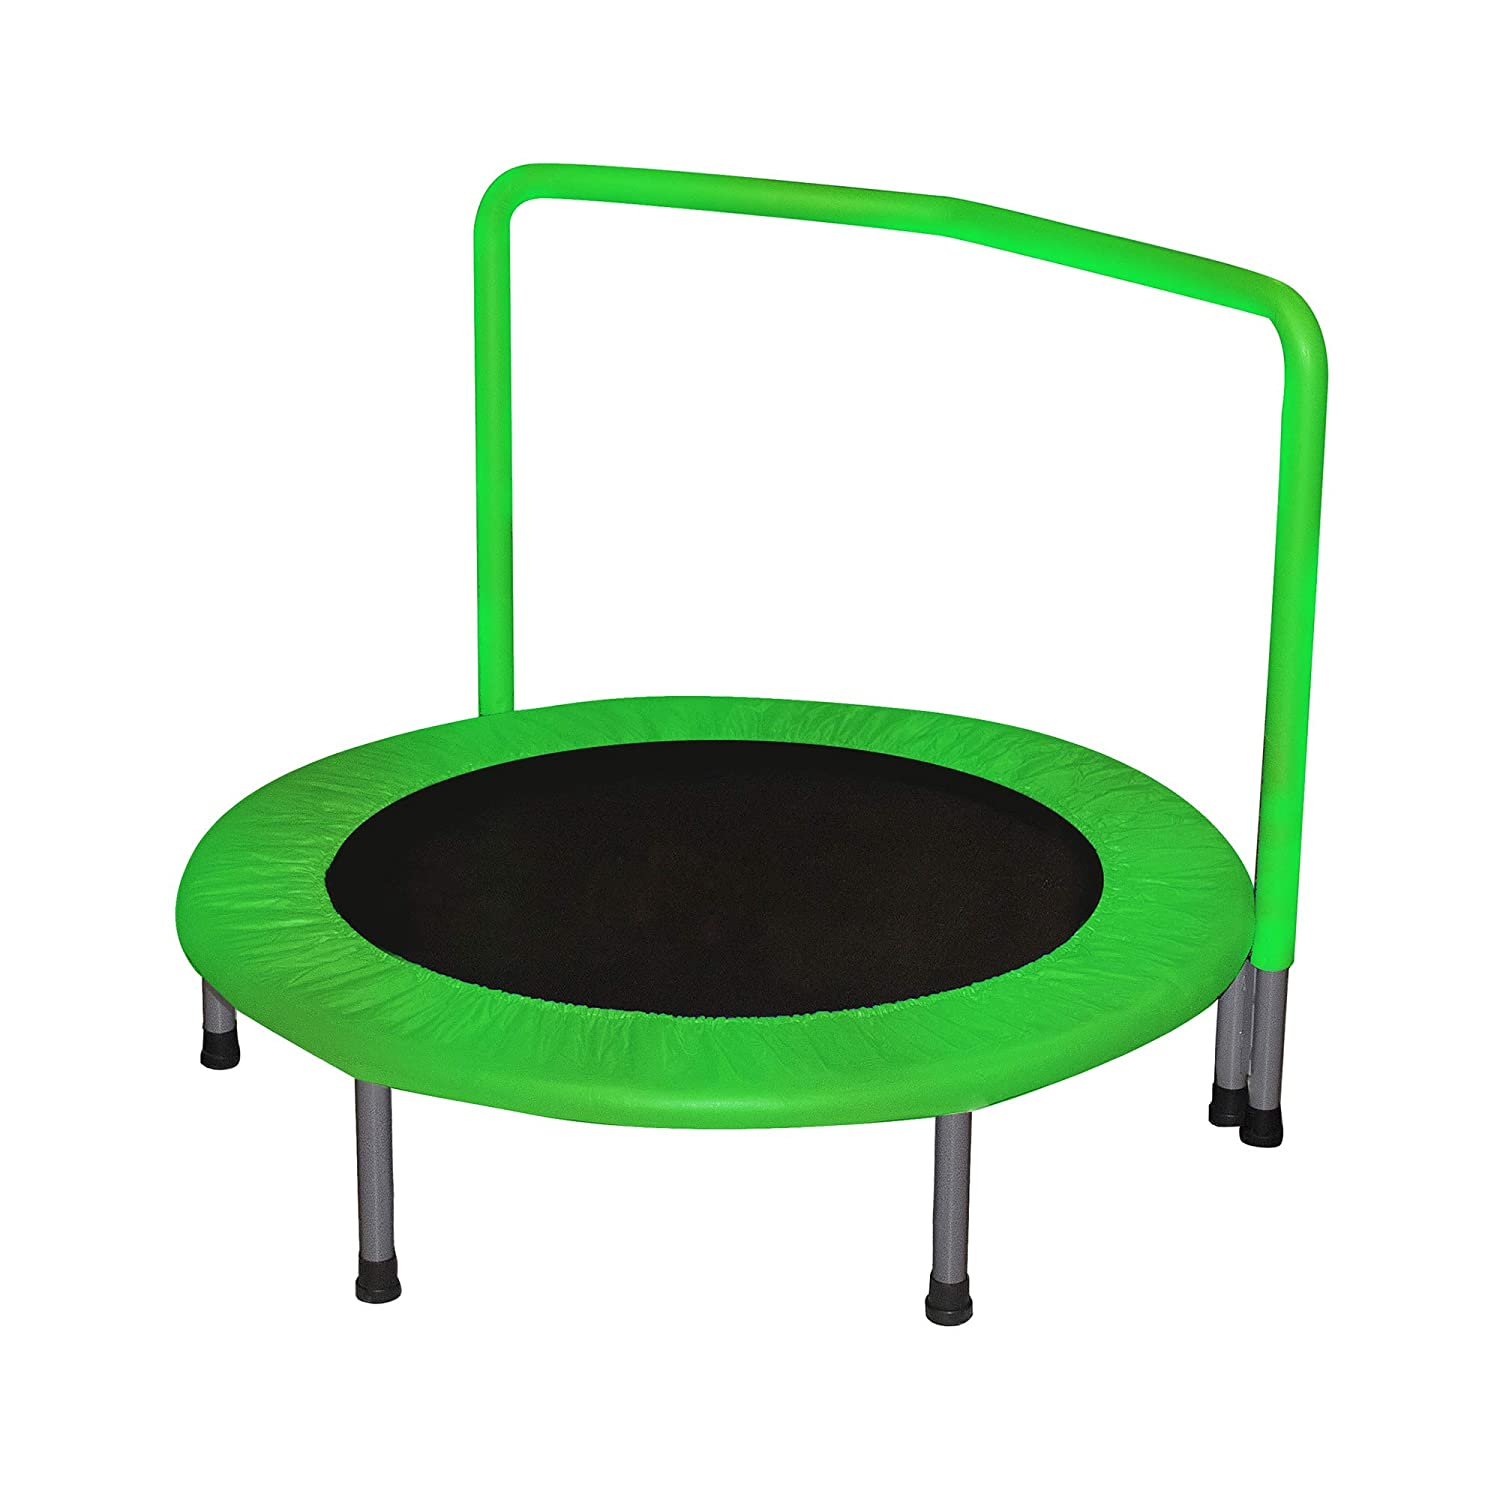 13 3 Waterproof Trampoline Mat 96 Rings For 15 Frame 7: Trampolines : Online Shopping For Clothing, Shoes, Jewelry